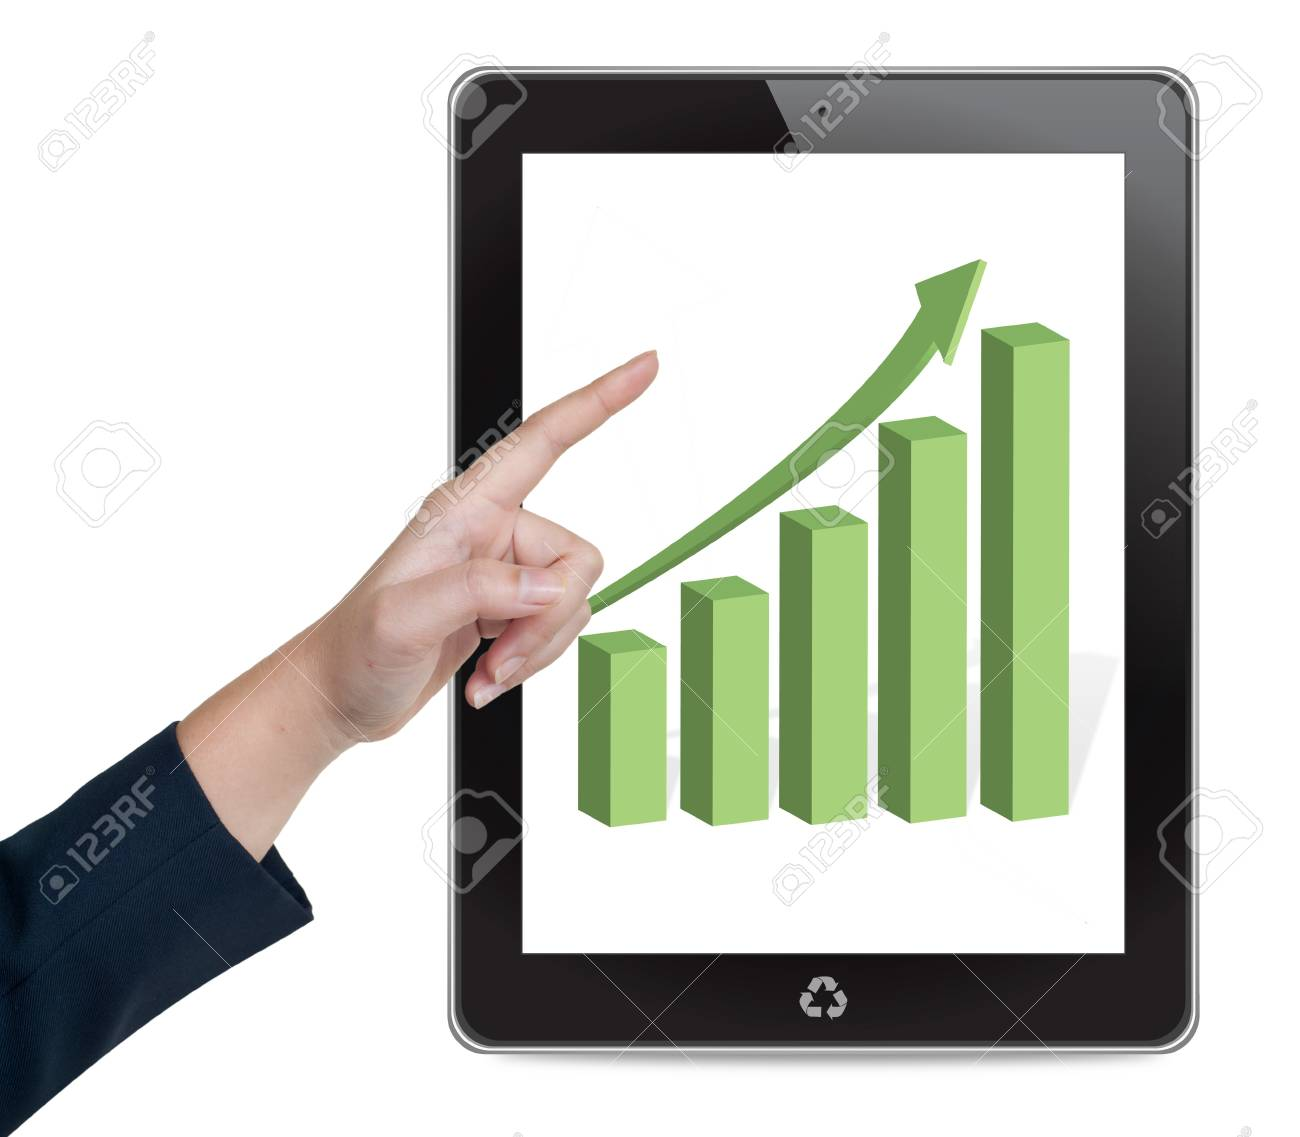 Hand pushing tablet on a touch screen interface Stock Photo - 14569191